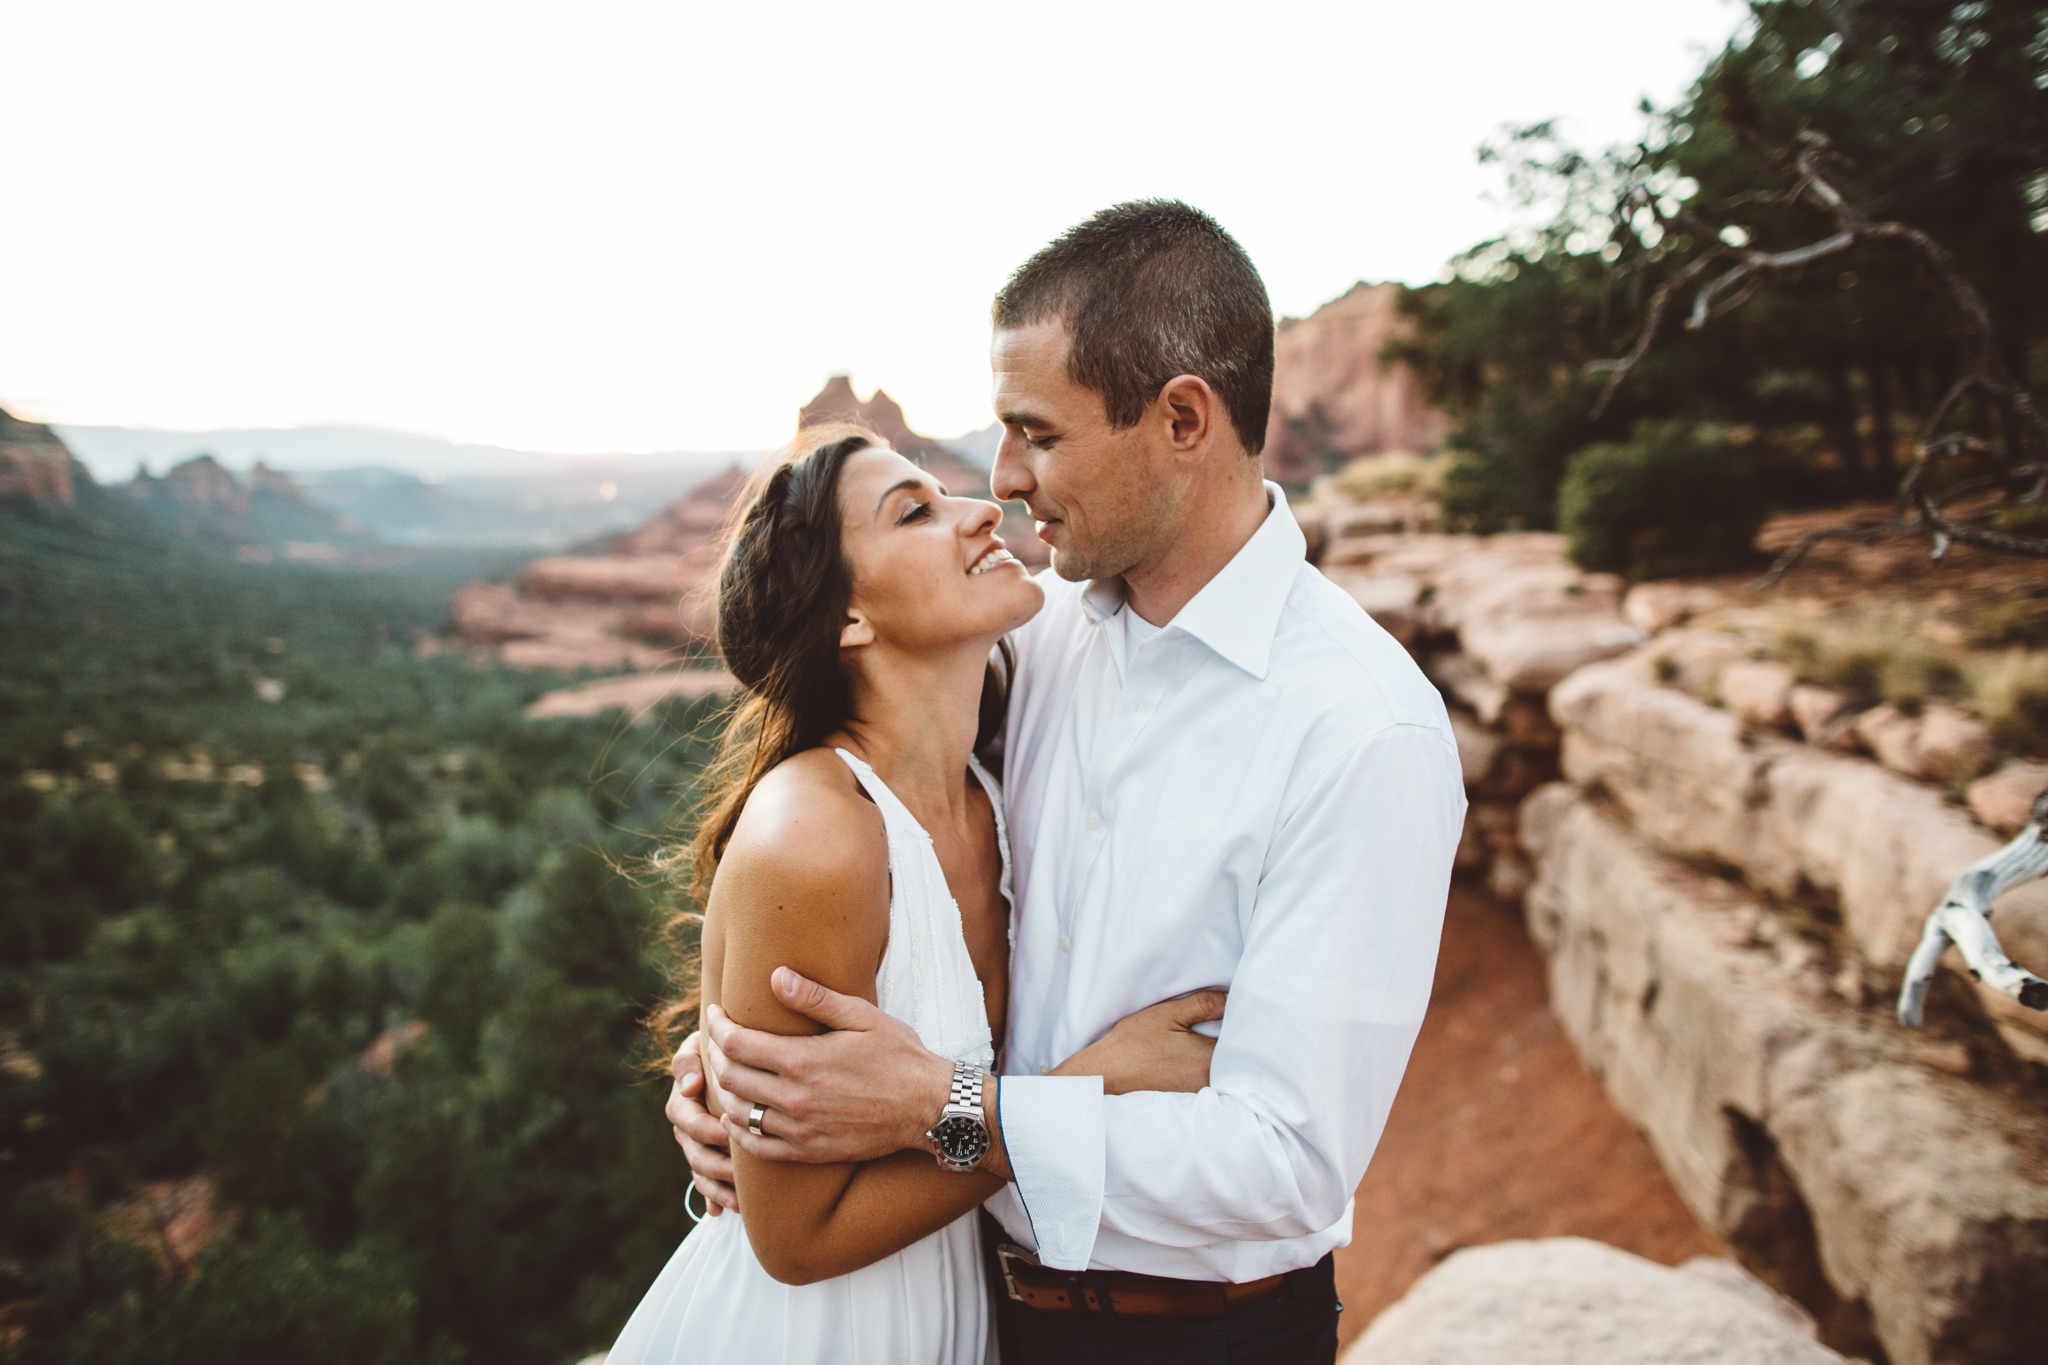 Christina + Tom | Sedona, Arizona Elopement